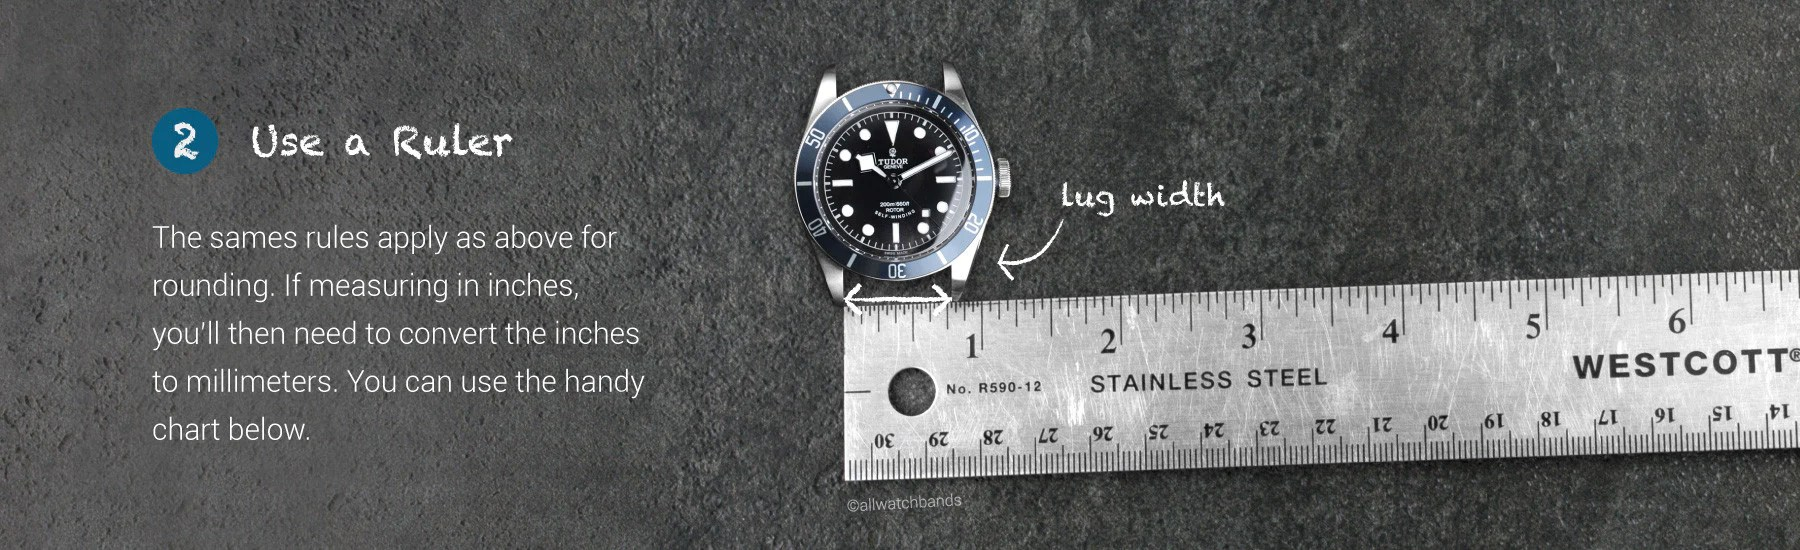 Watch band conversion chart inches to millimeters also measuring guide allwatchbands rh